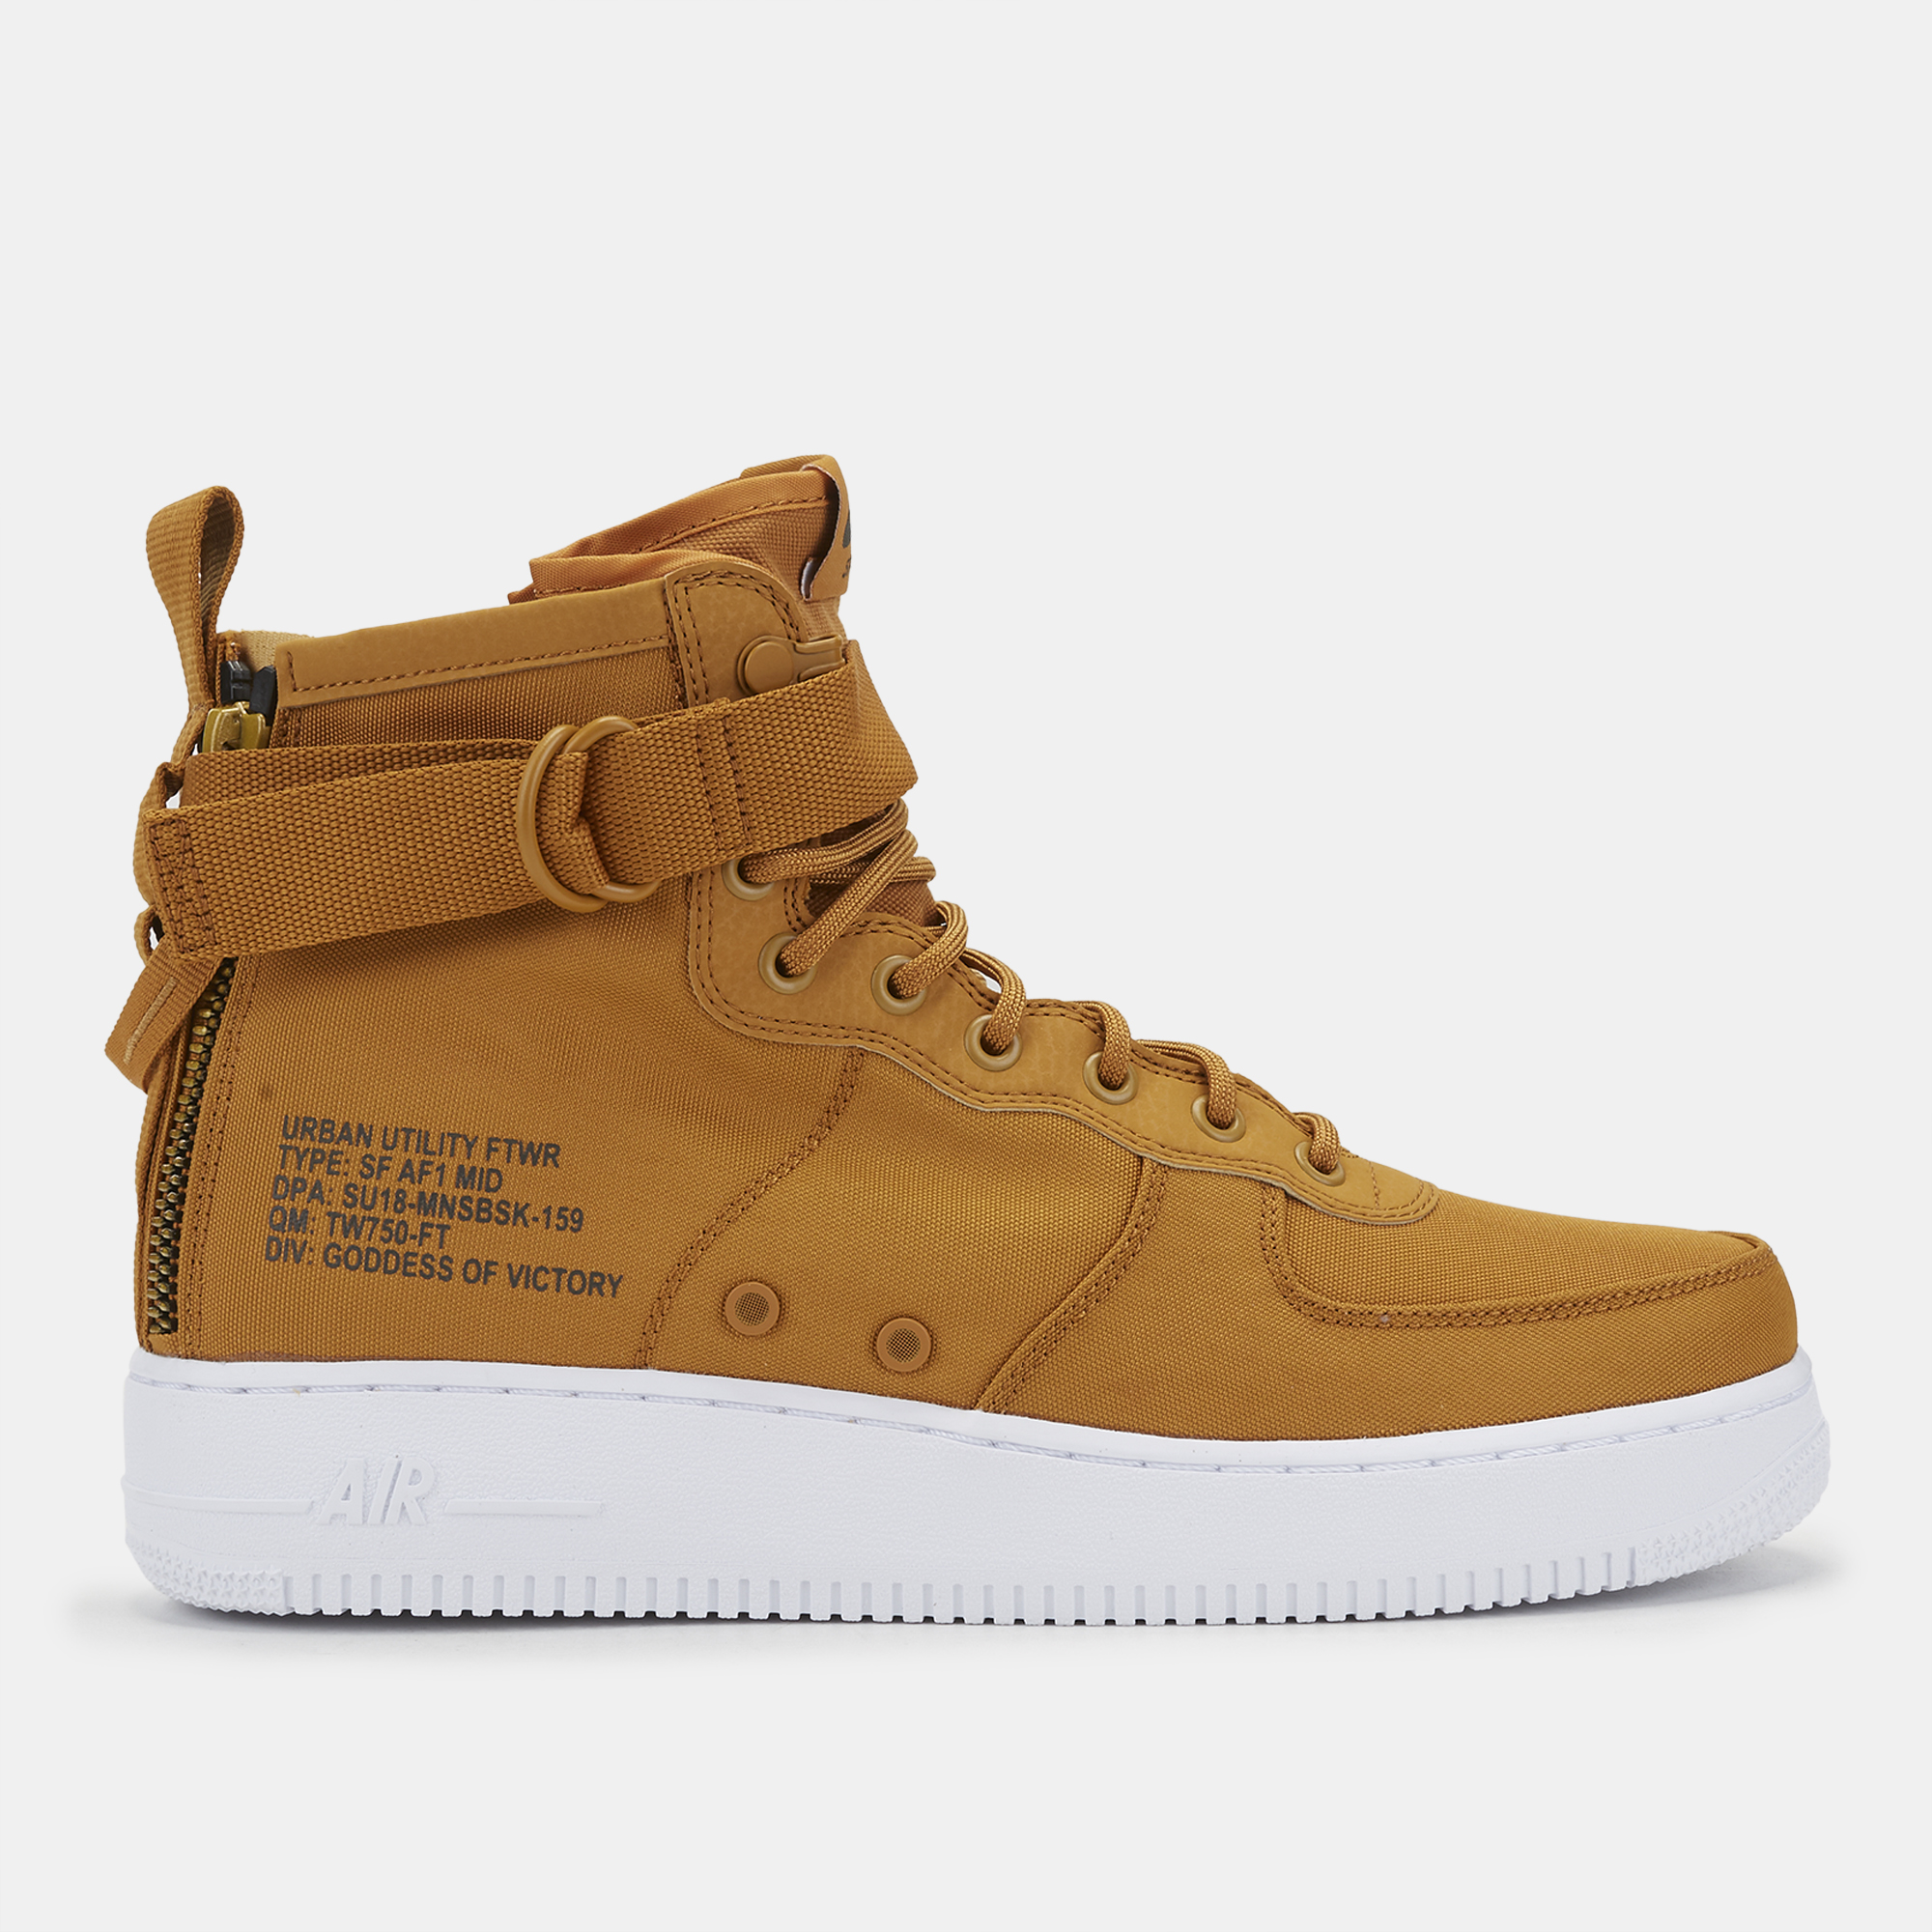 best service 8f58e 46c68 Nike Special Field Air Force 1 Mid Boot Nike917753 700 in ...